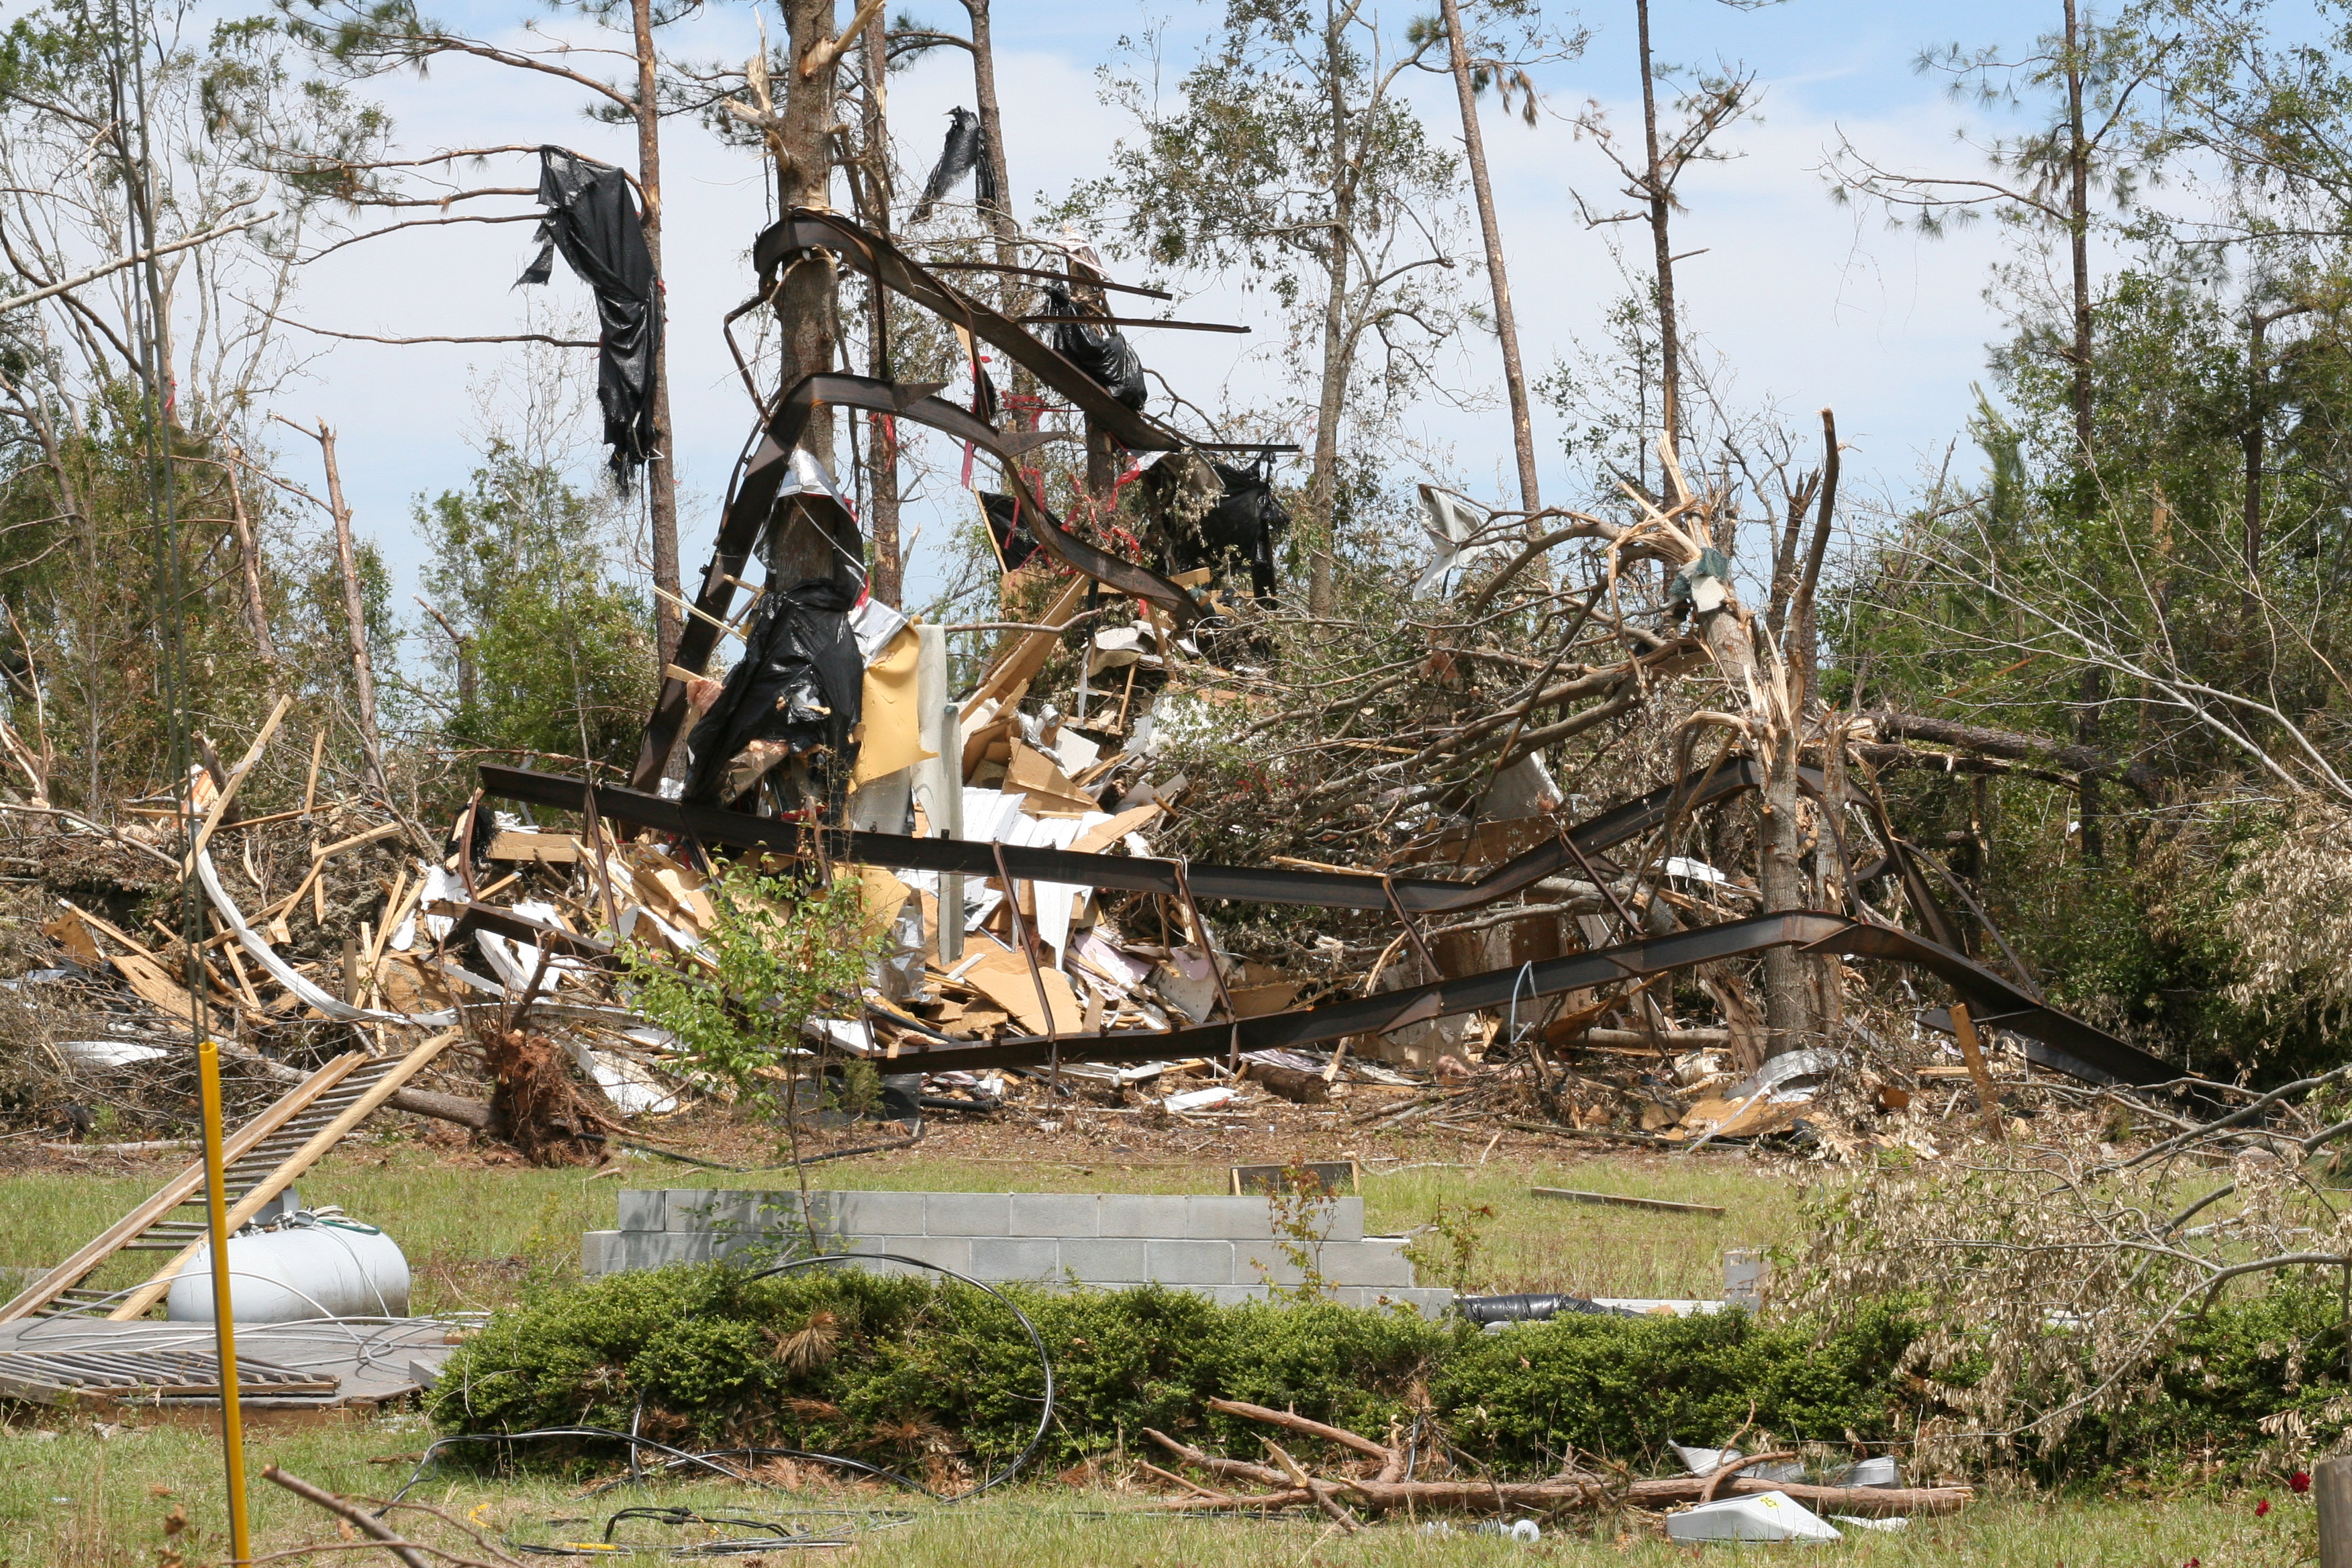 Debris is all that remains of a home in the unincorporated area of Rio in Spalding County, Ga. A tornado struck there just after midnight on May 28, 2011.